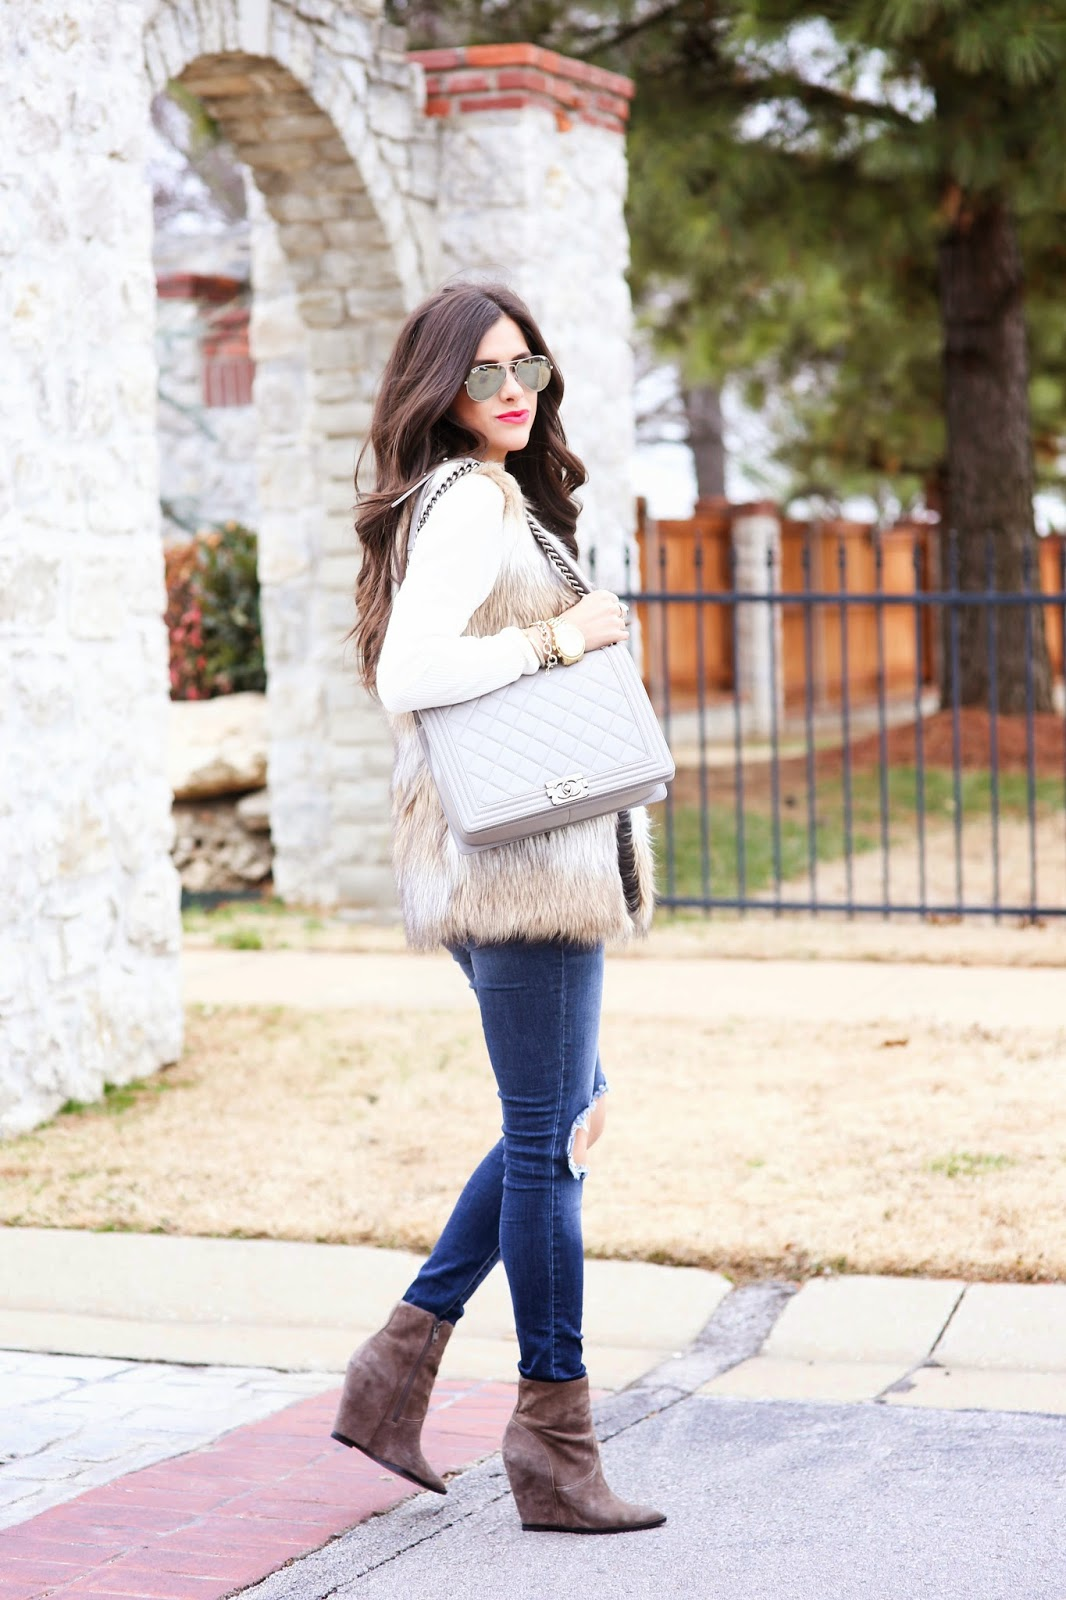 faux fur vest, chic wish fur vest, ripped jeans, knee ripped jeans, grey chanel boy bag, the courtey bibb, bauble bar courtney bib with pearls, emily gemma, cream v neck sweater, michael hors runway watch in gold, david yurman black onyx ring, david yurman ring, mirrored rayon aviators